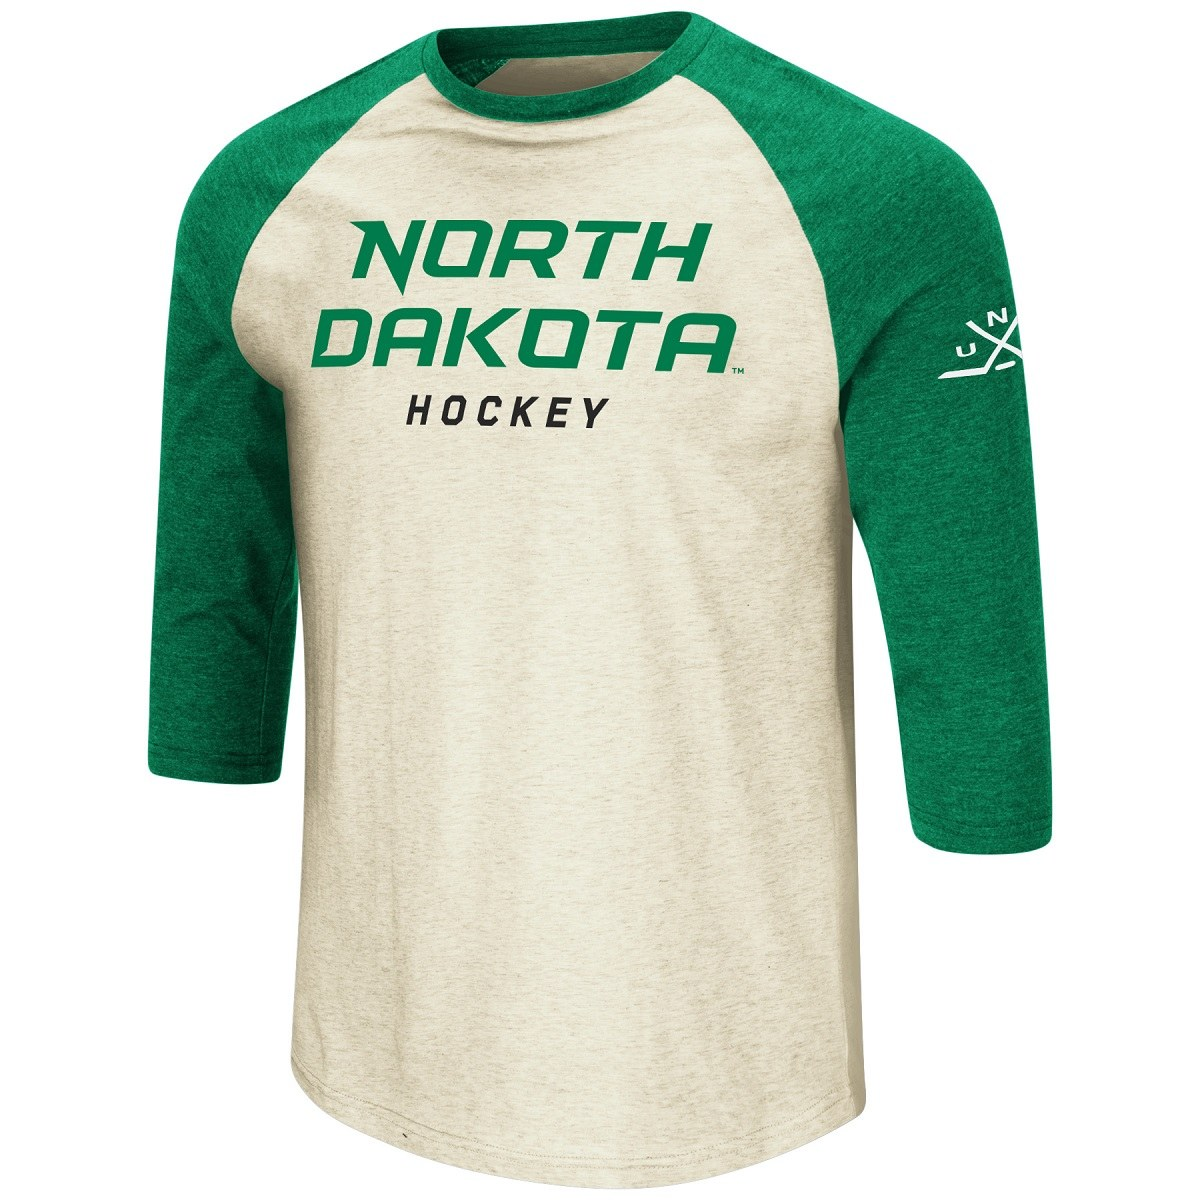 UNIVERSITY OF NORTH DAKOTA HOCKEY JUICE BASEBALL TEE